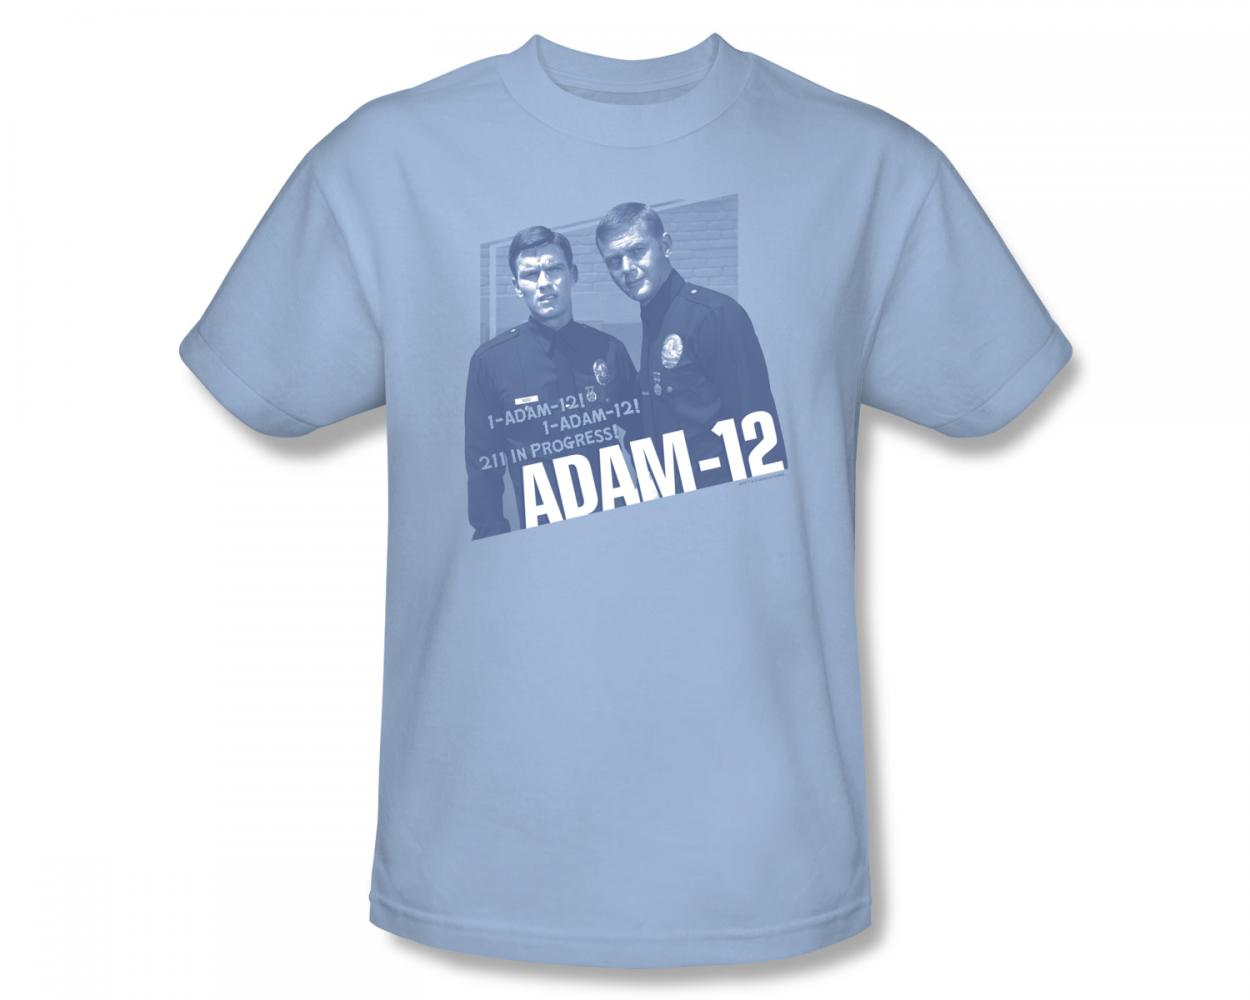 Image of Adam-12 - Radio Call Slim Fit Adult T-Shirt In Light Blue